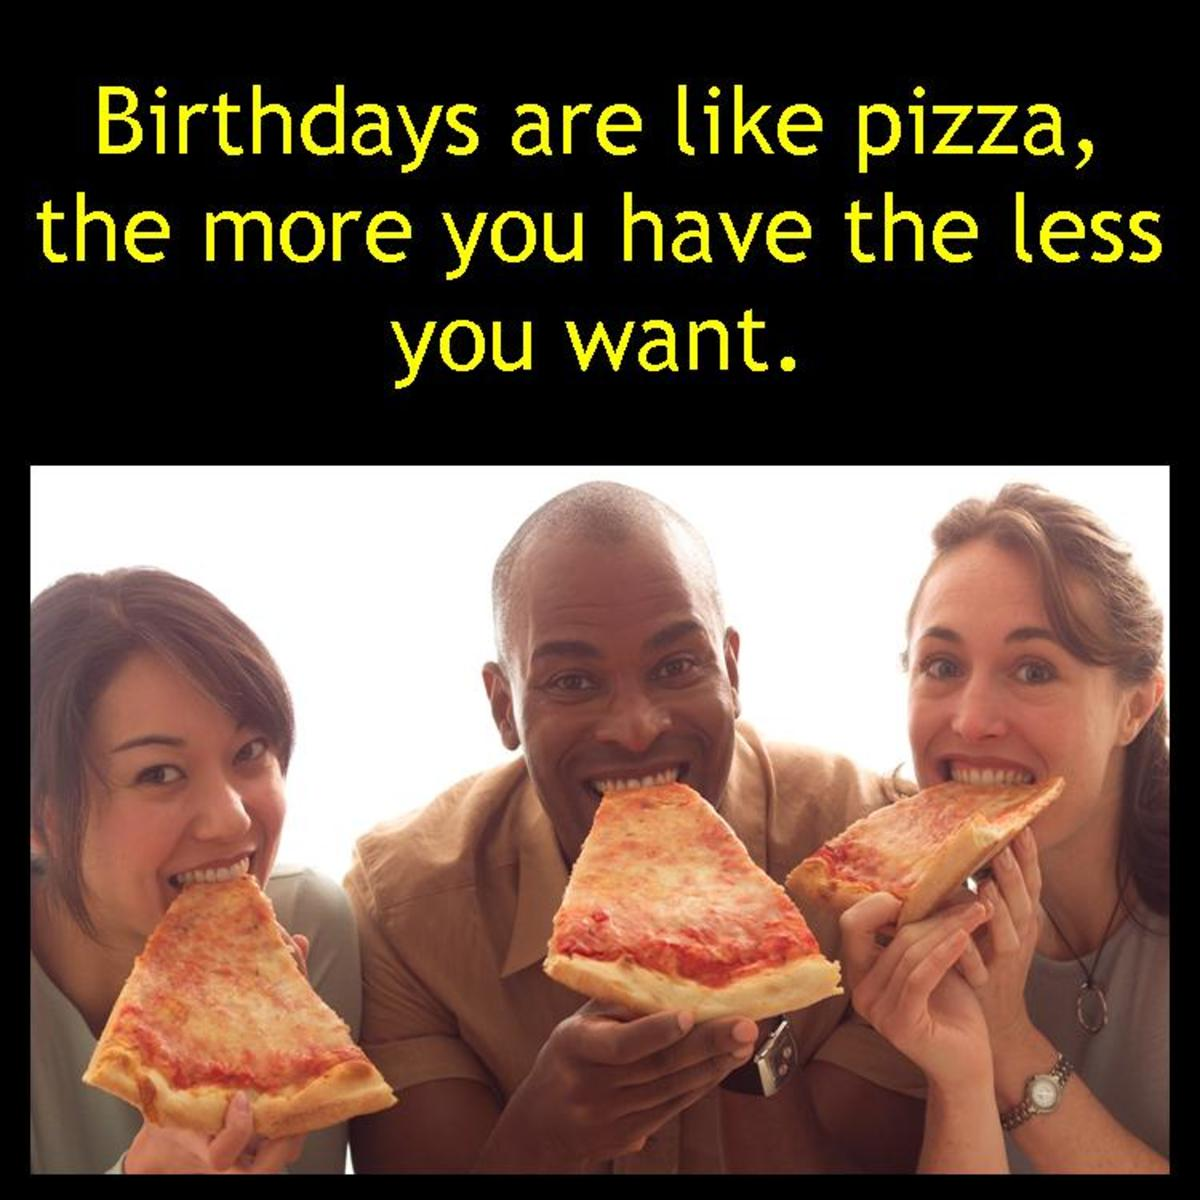 Write something funny just by comparing something totally unrelated to aging or birthdays. (Birthdays are like...?) (Getting old is like...?)